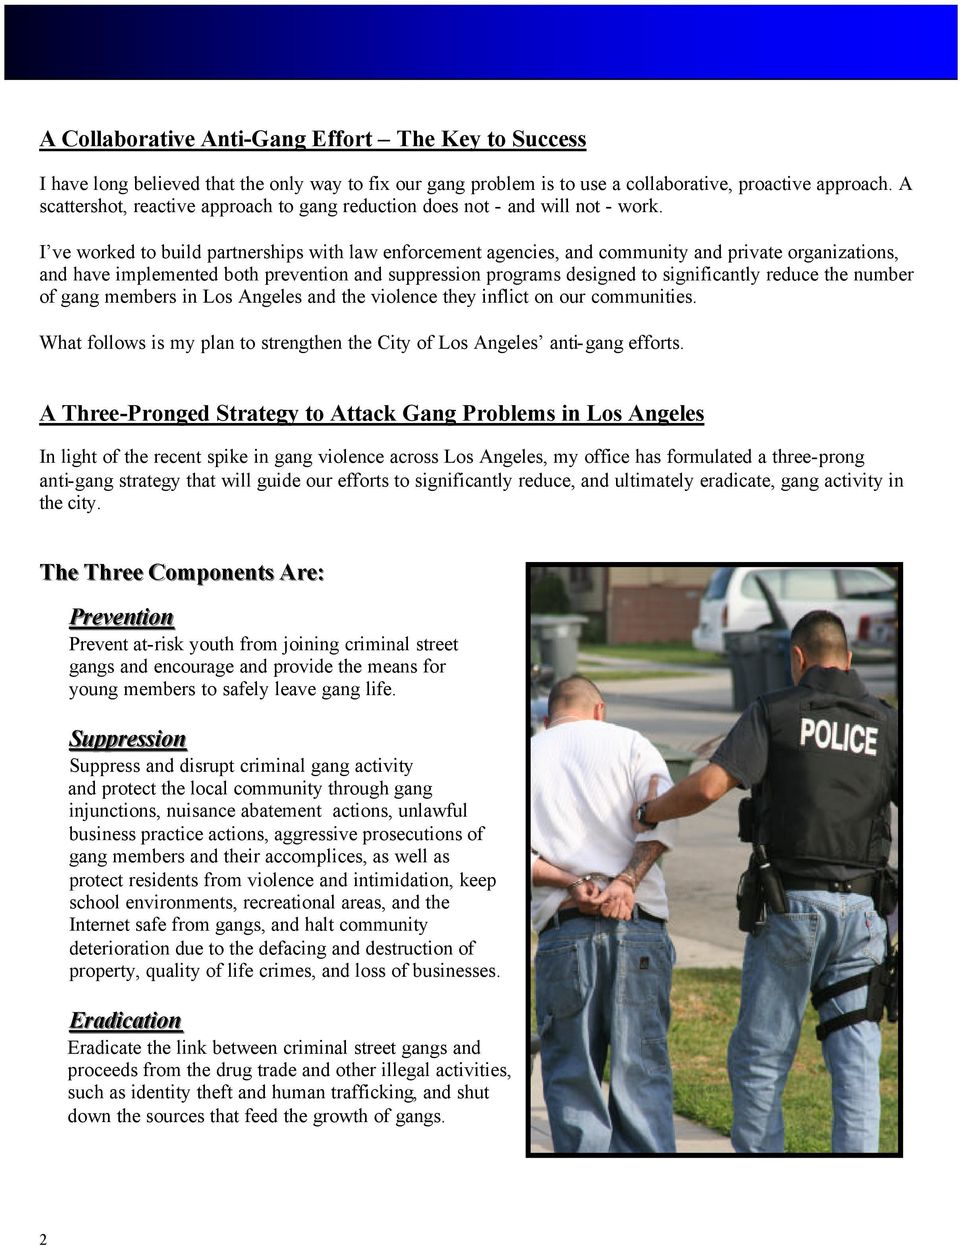 I ve worked to build partnerships with law enforcement agencies, and community and private organizations, and have implemented both prevention and suppression programs designed to significantly